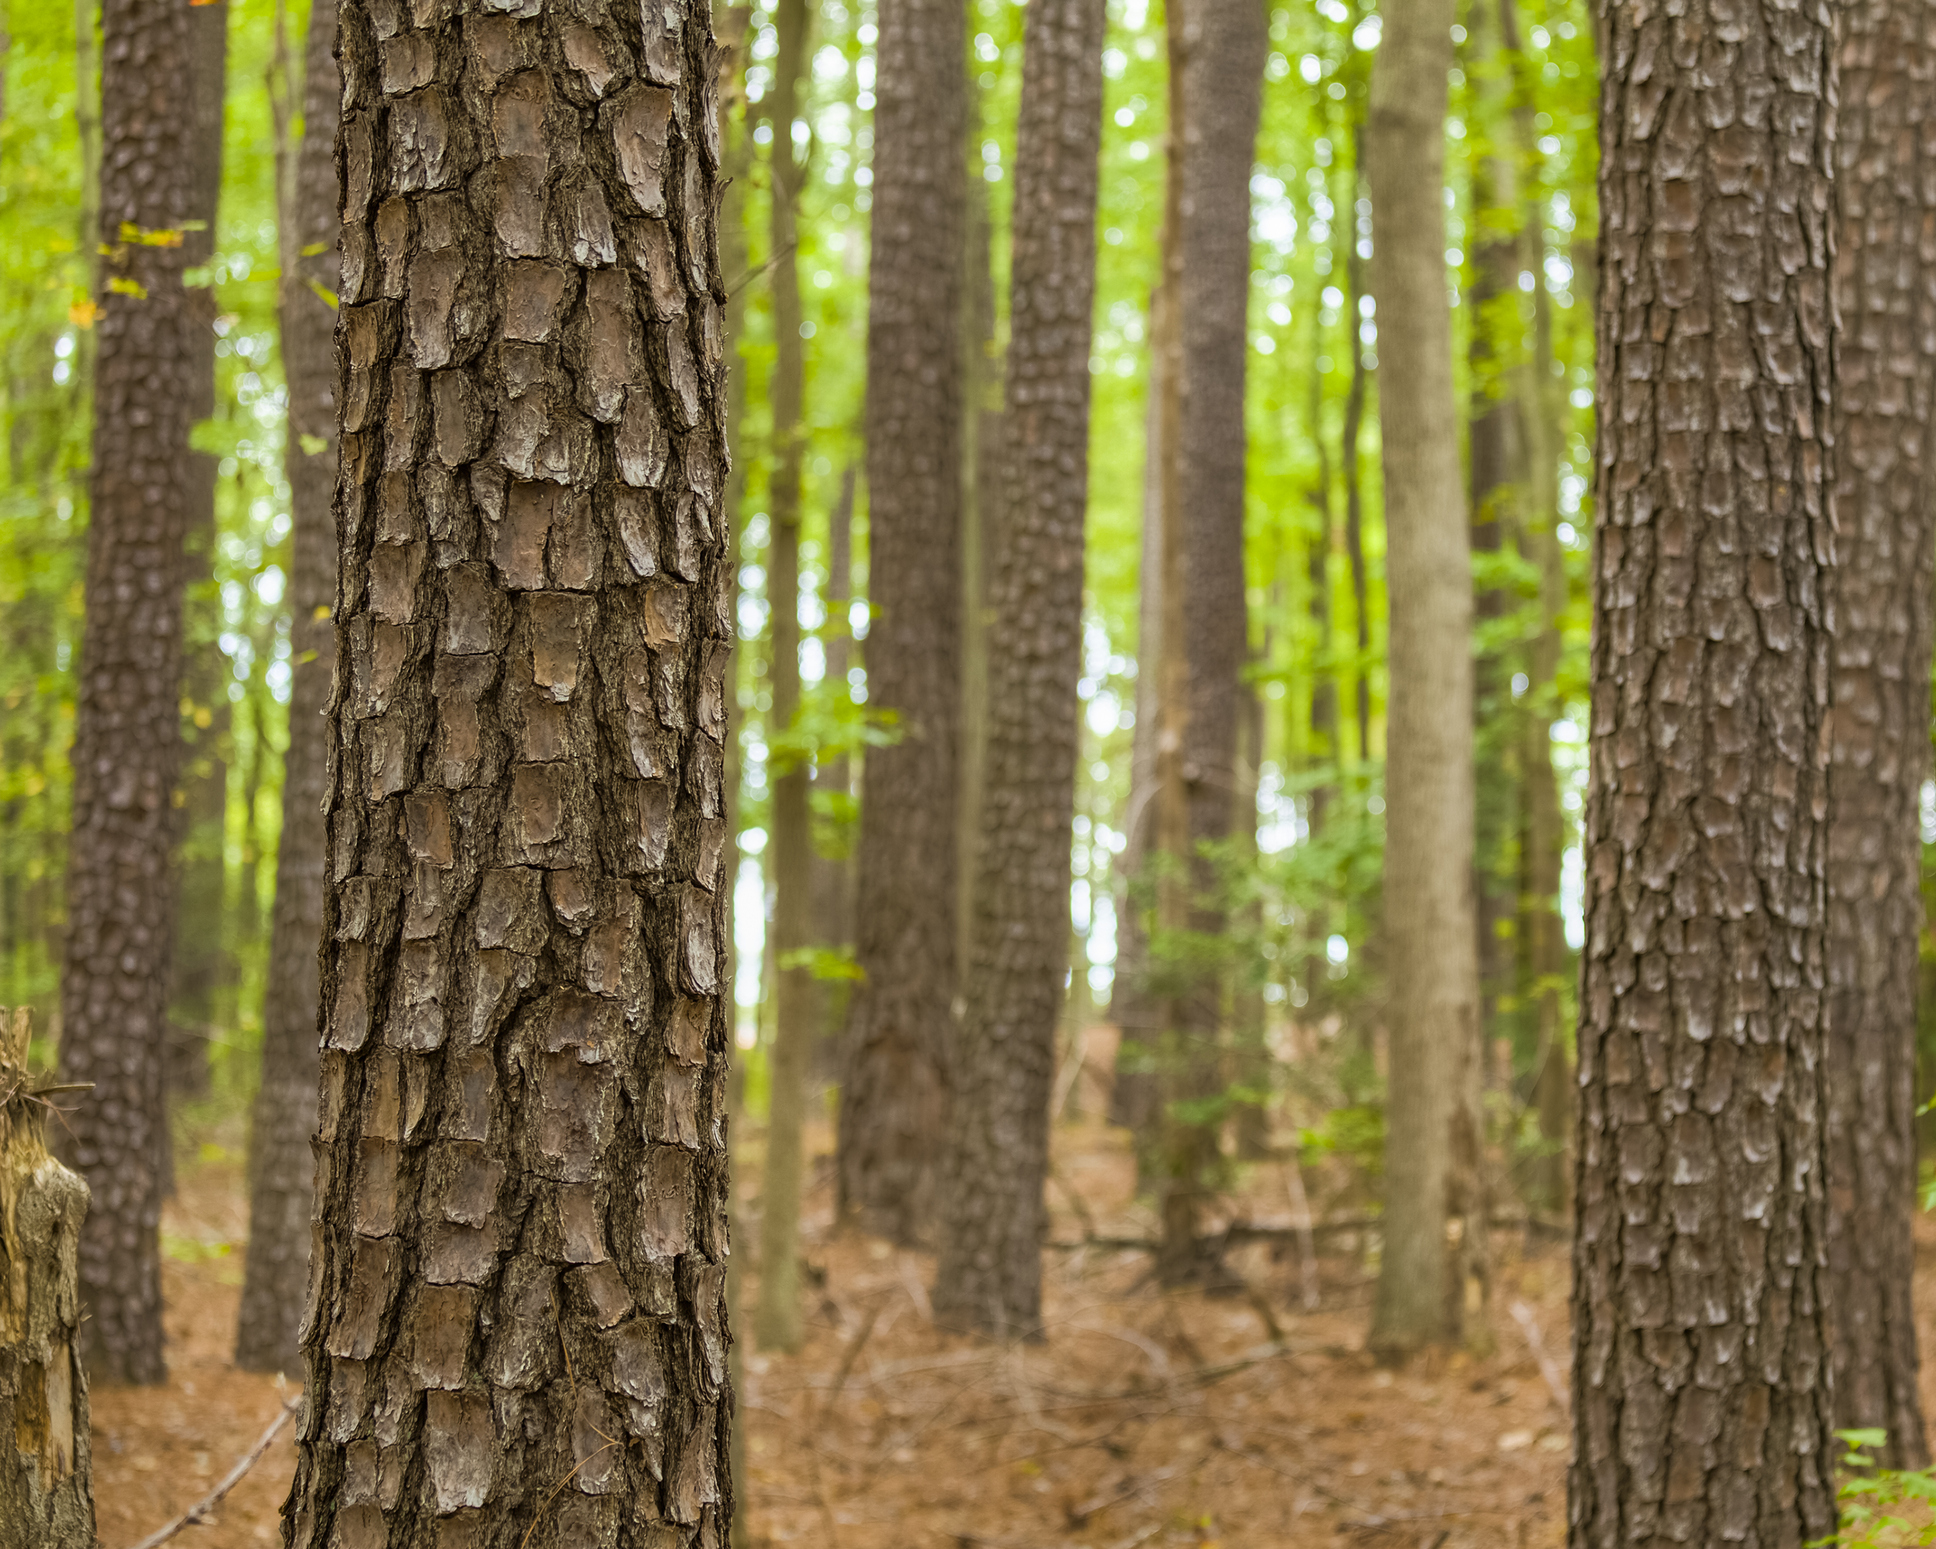 A closeup picture of a stand of Loblolly pine trees.